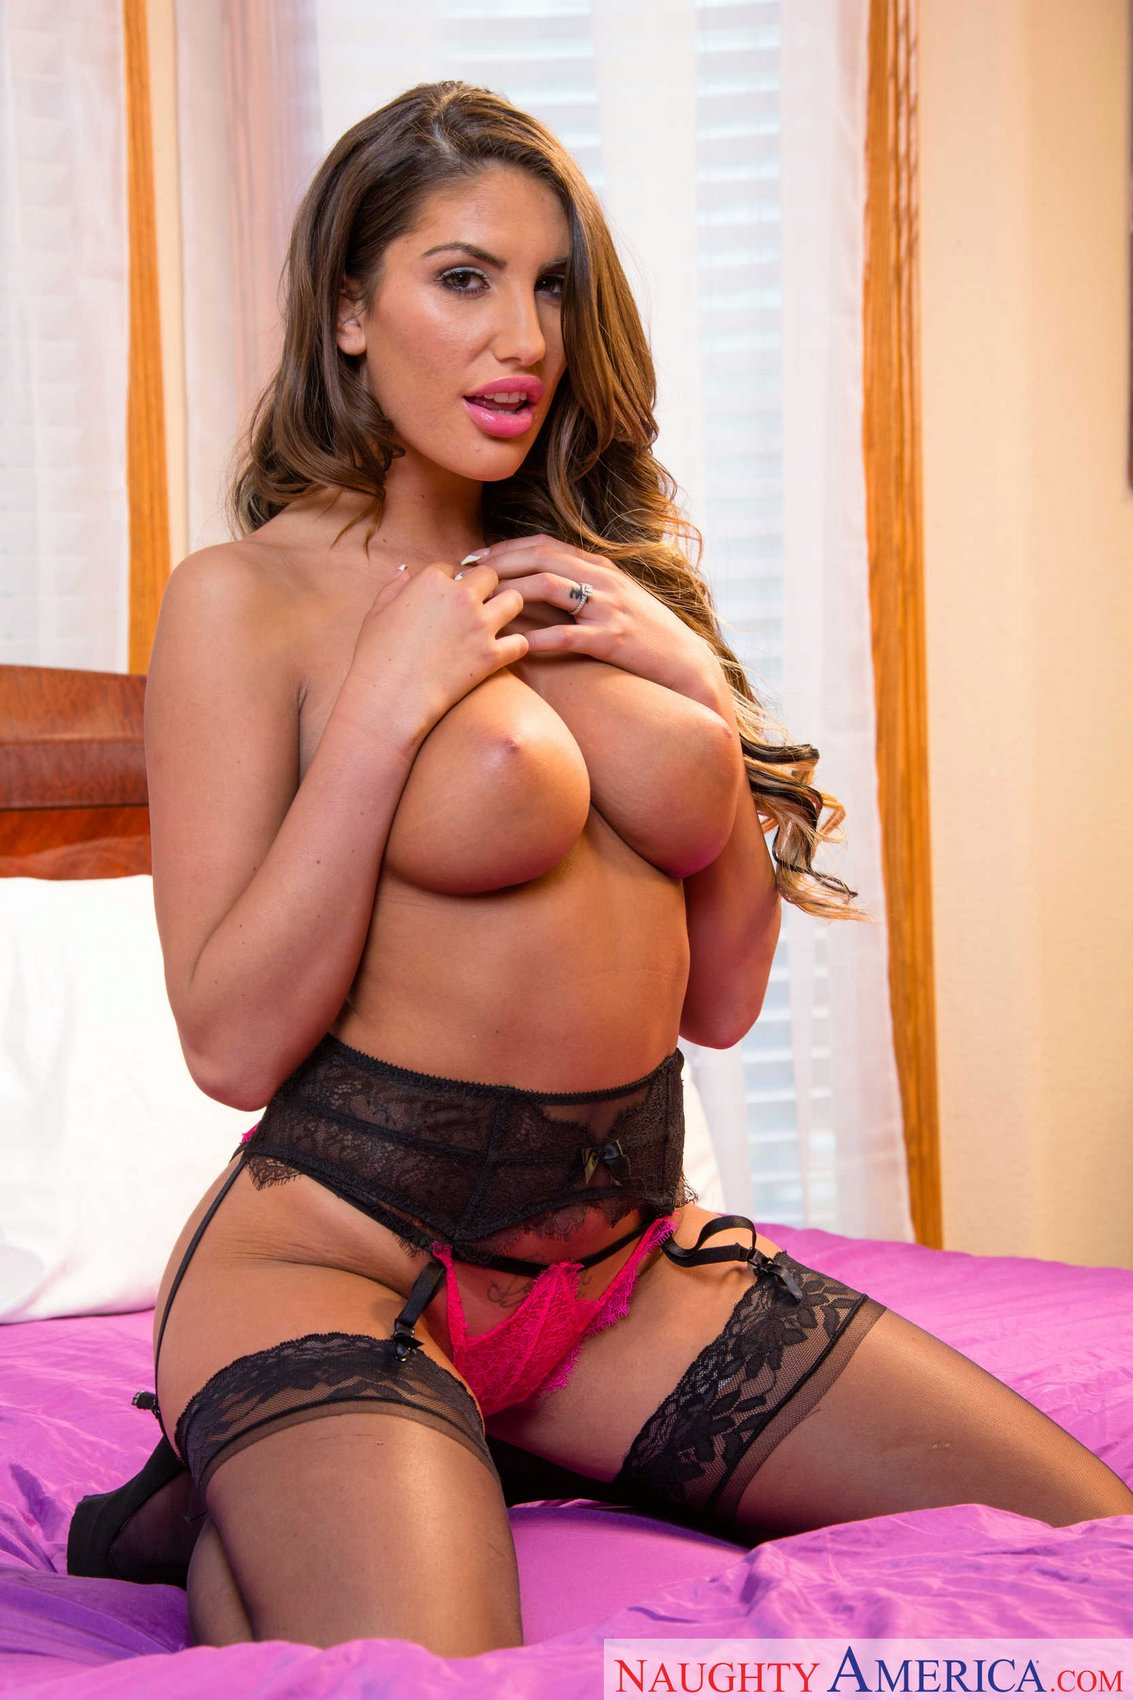 August Ames Free